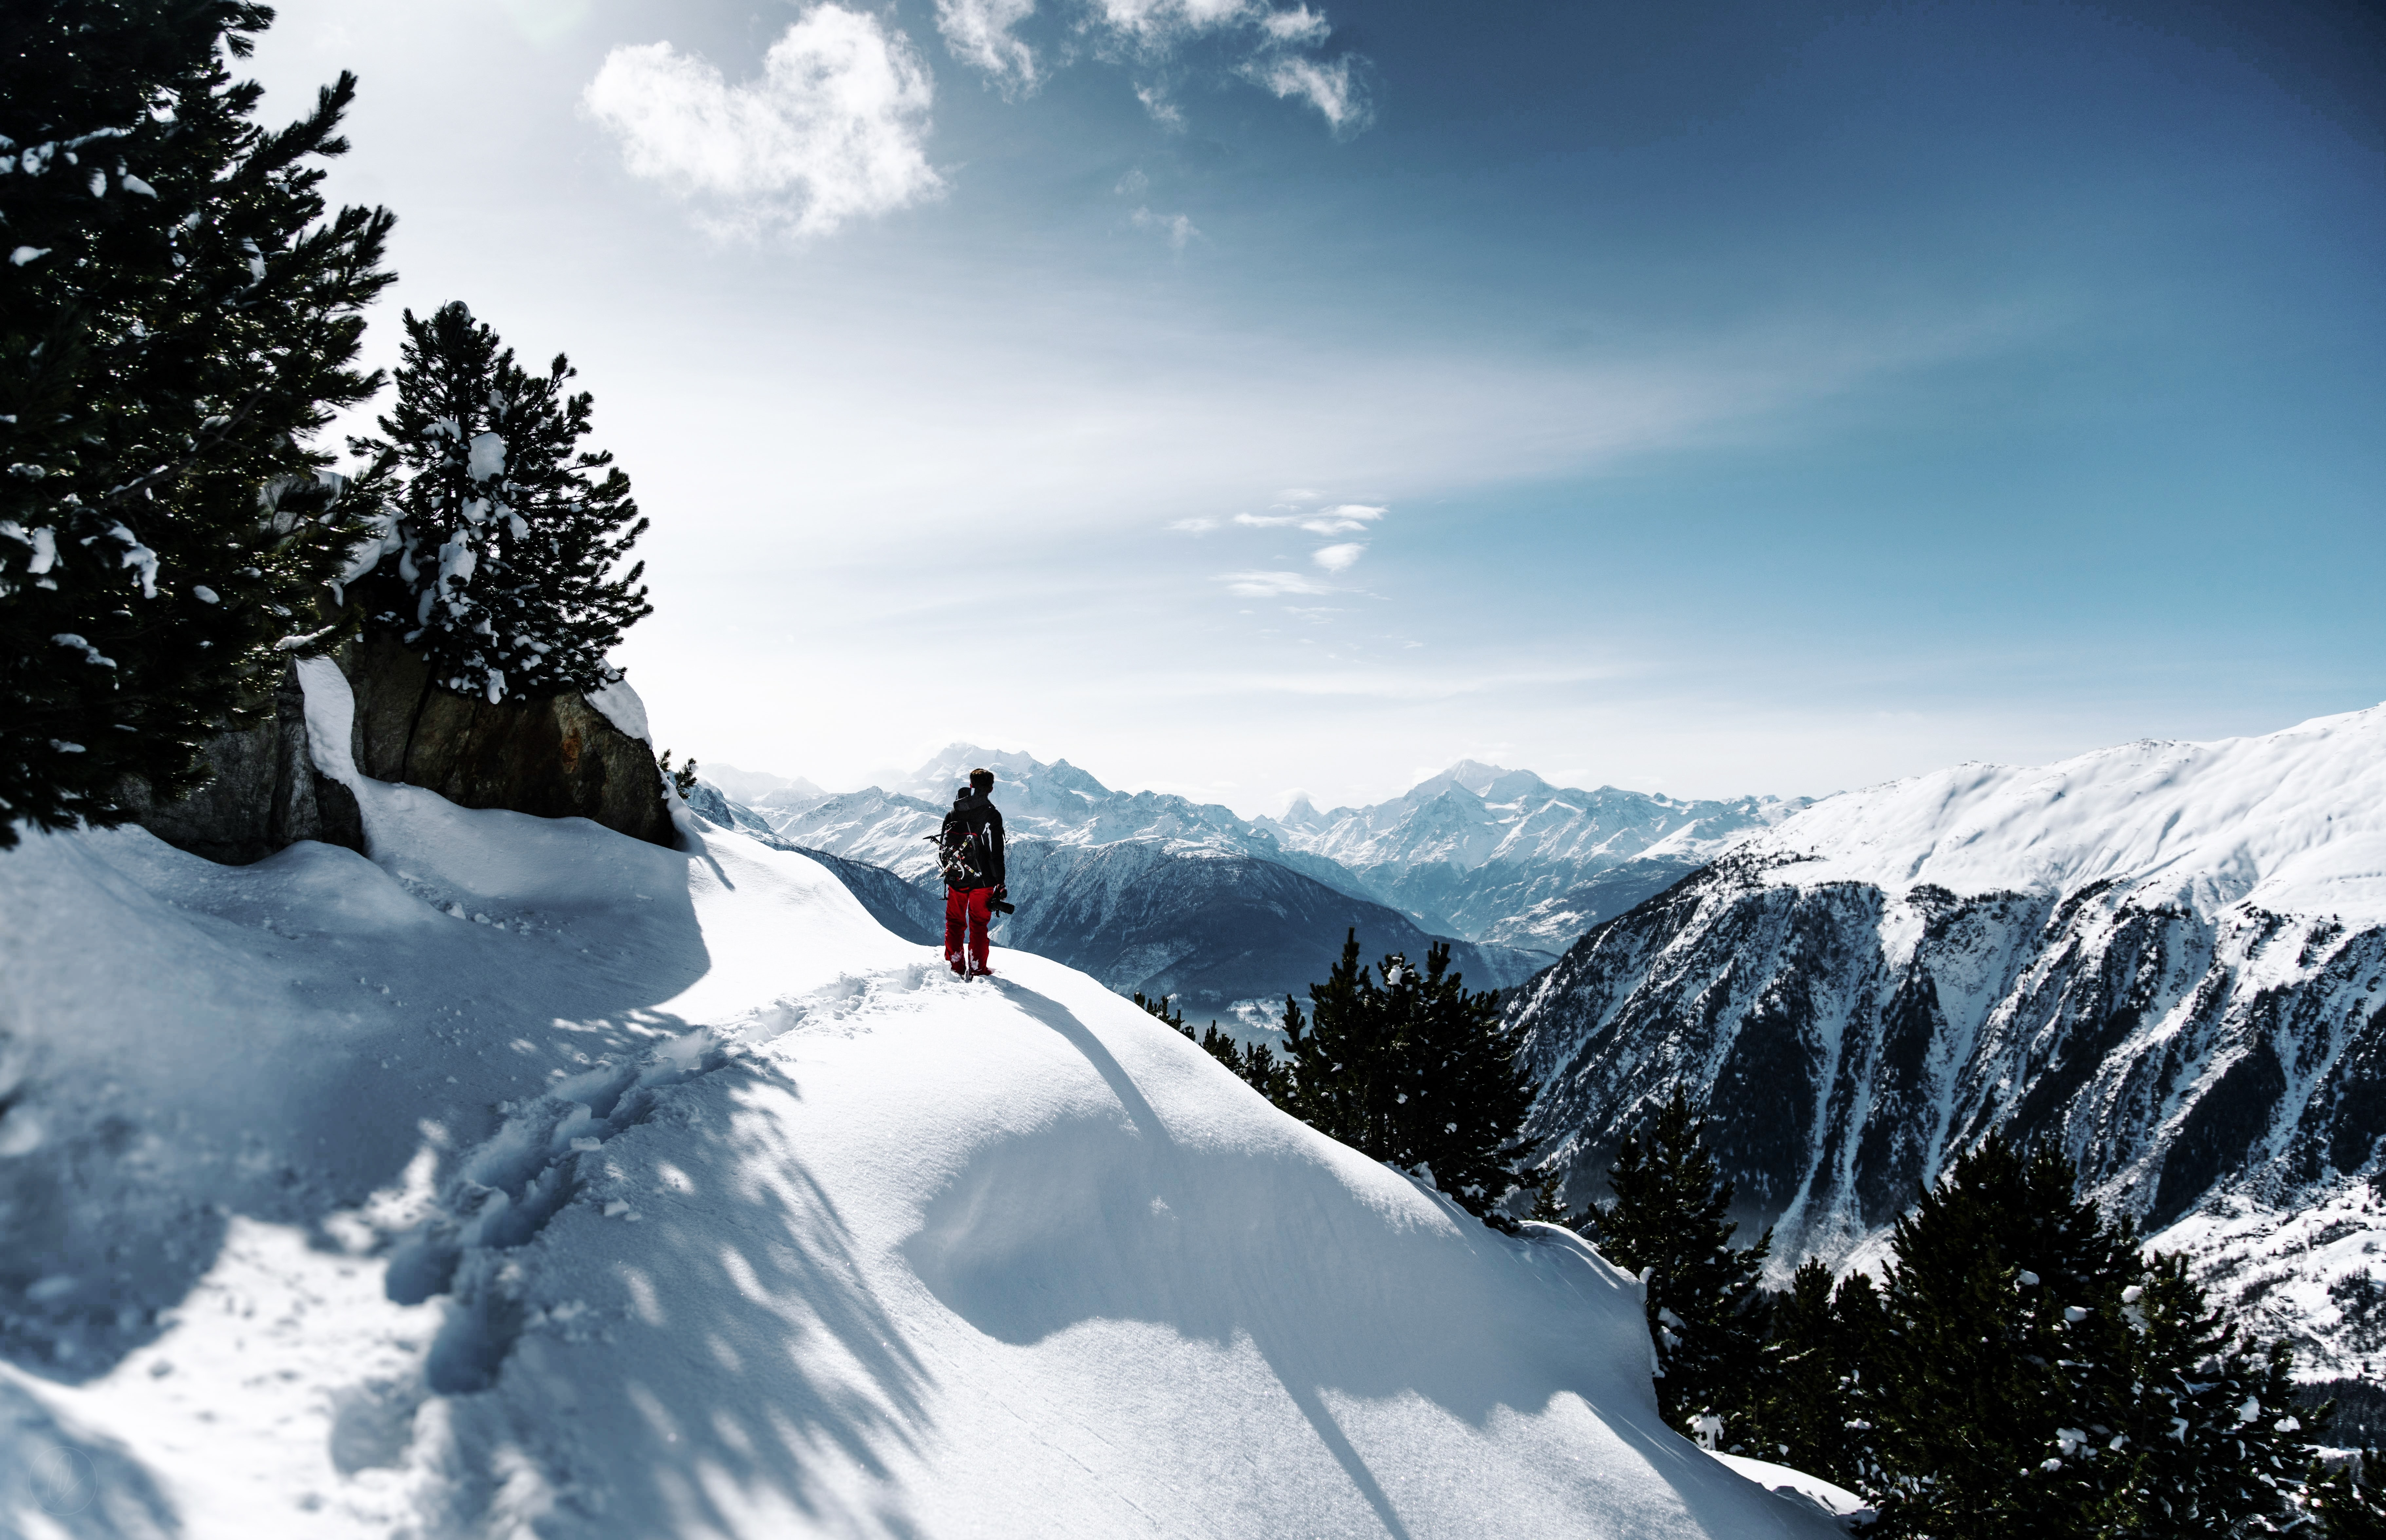 A hiker looks out onto snowy mountains